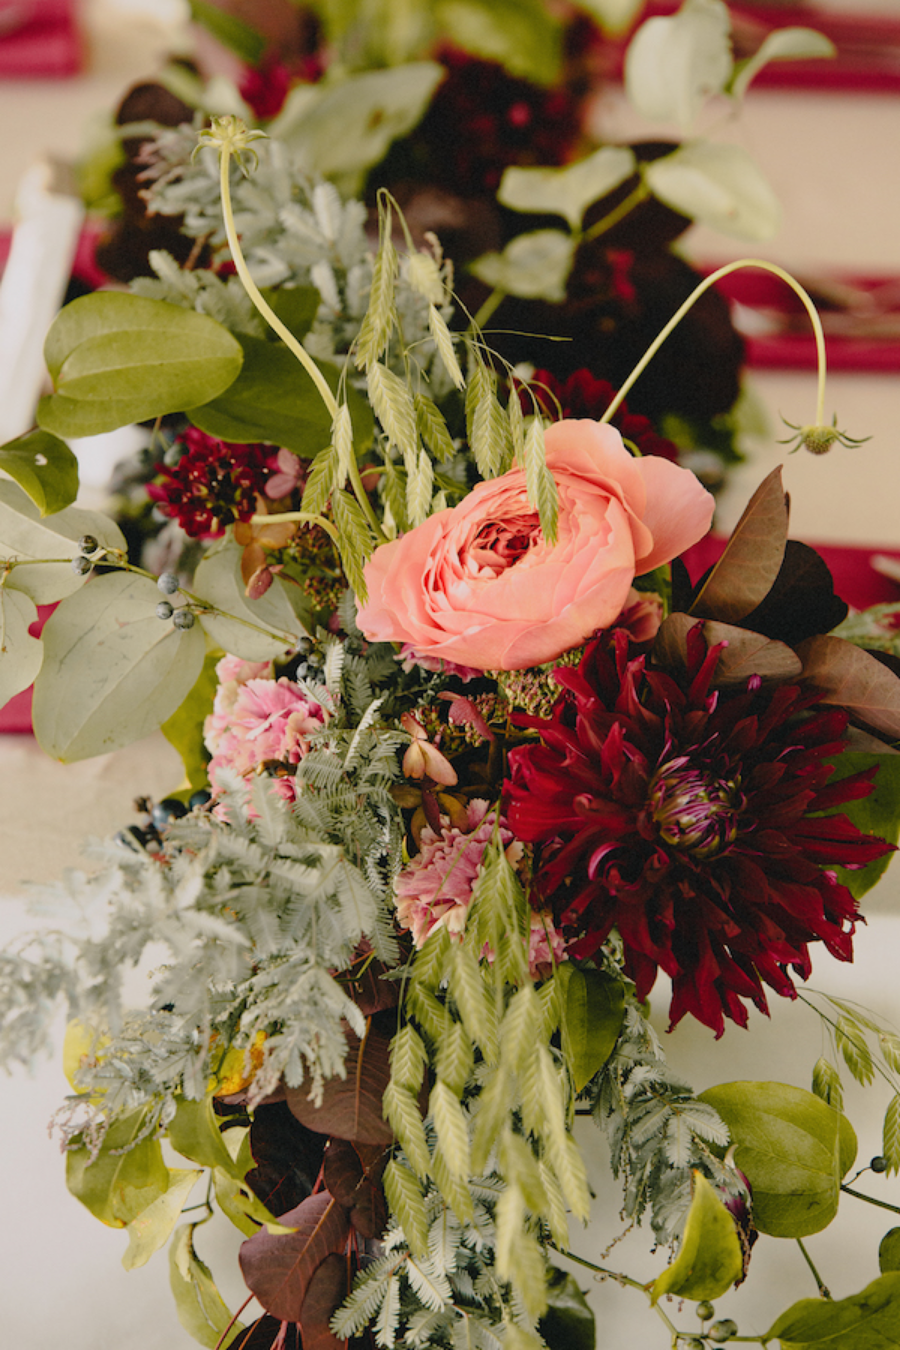 Berry Palette | Kline Farm | Tented Wedding | Romantic Antique Garden Roses | Queen Red Lime Zinnias | Philosophy Flowers | Kelly Perry | Blest Studios | North Carolina Wedding | Wedding Decor